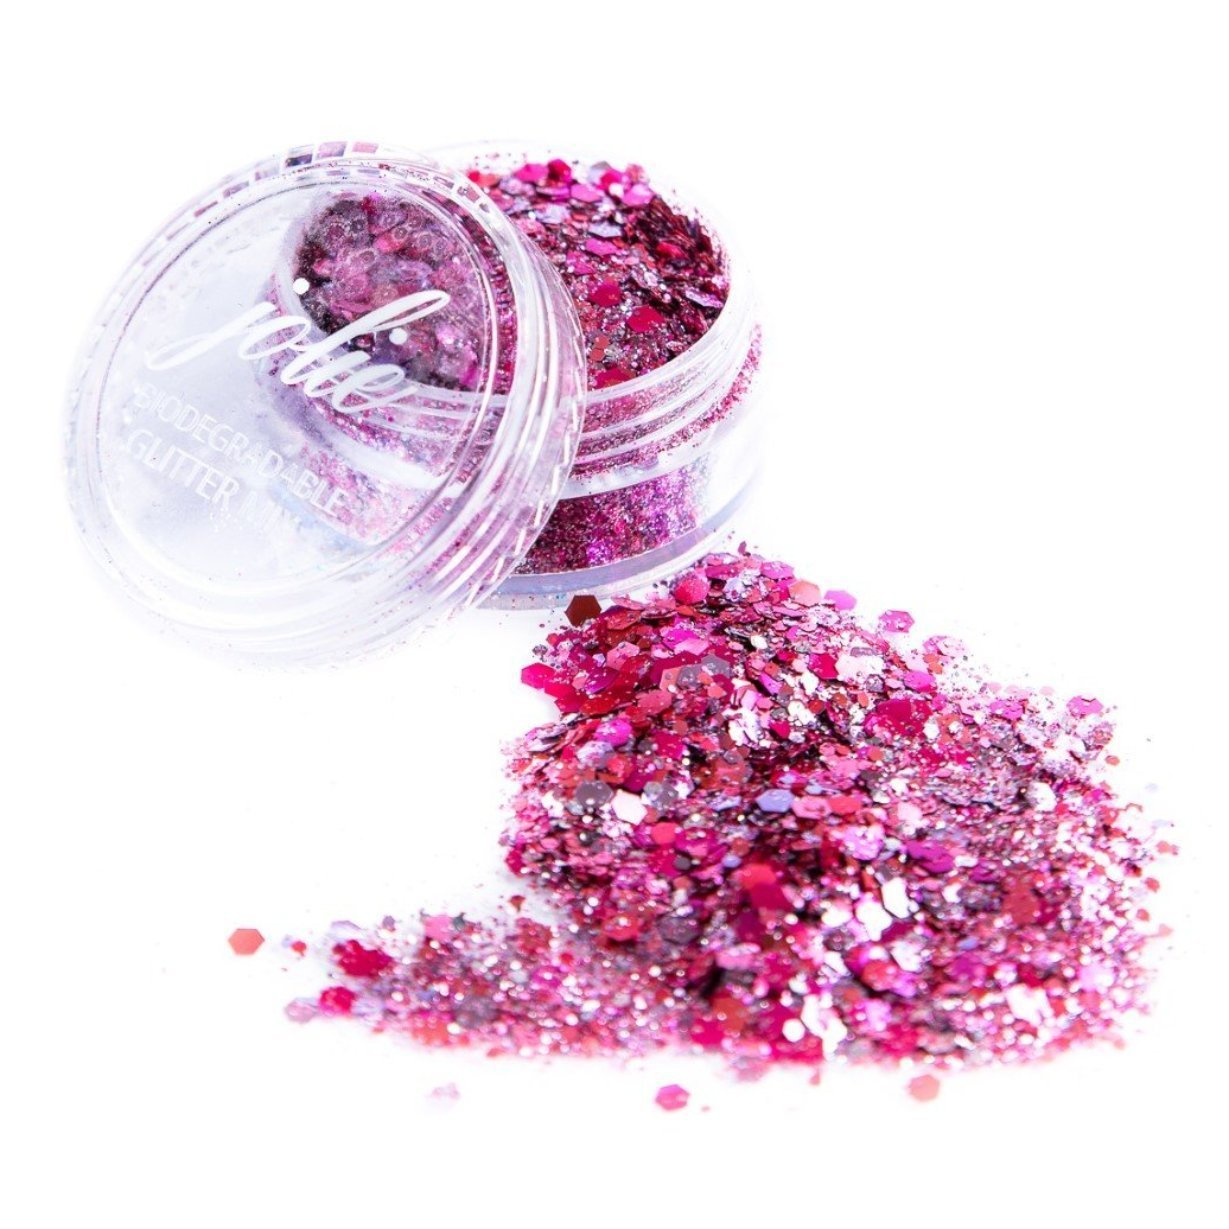 Biodegradable Chunky Mixed Festival Glitter - Summer of Love